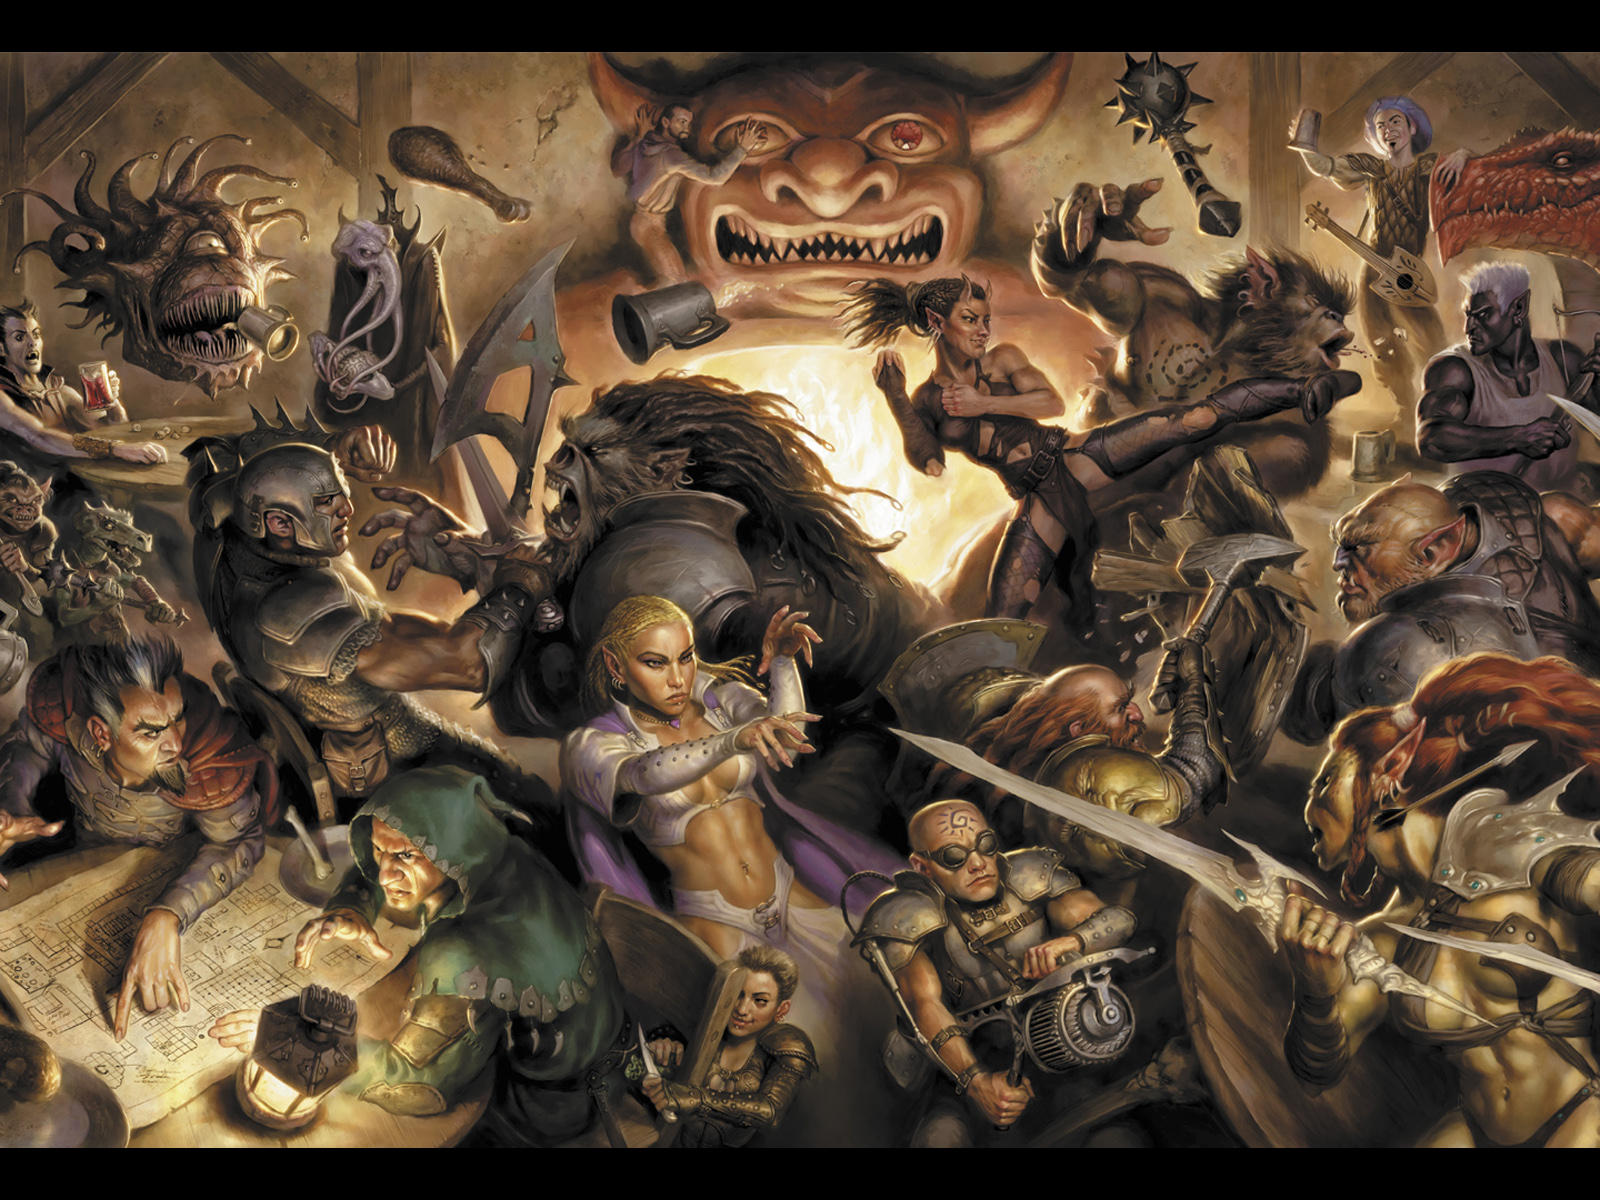 Dungeons & Dragons Backgrounds on Wallpapers Vista